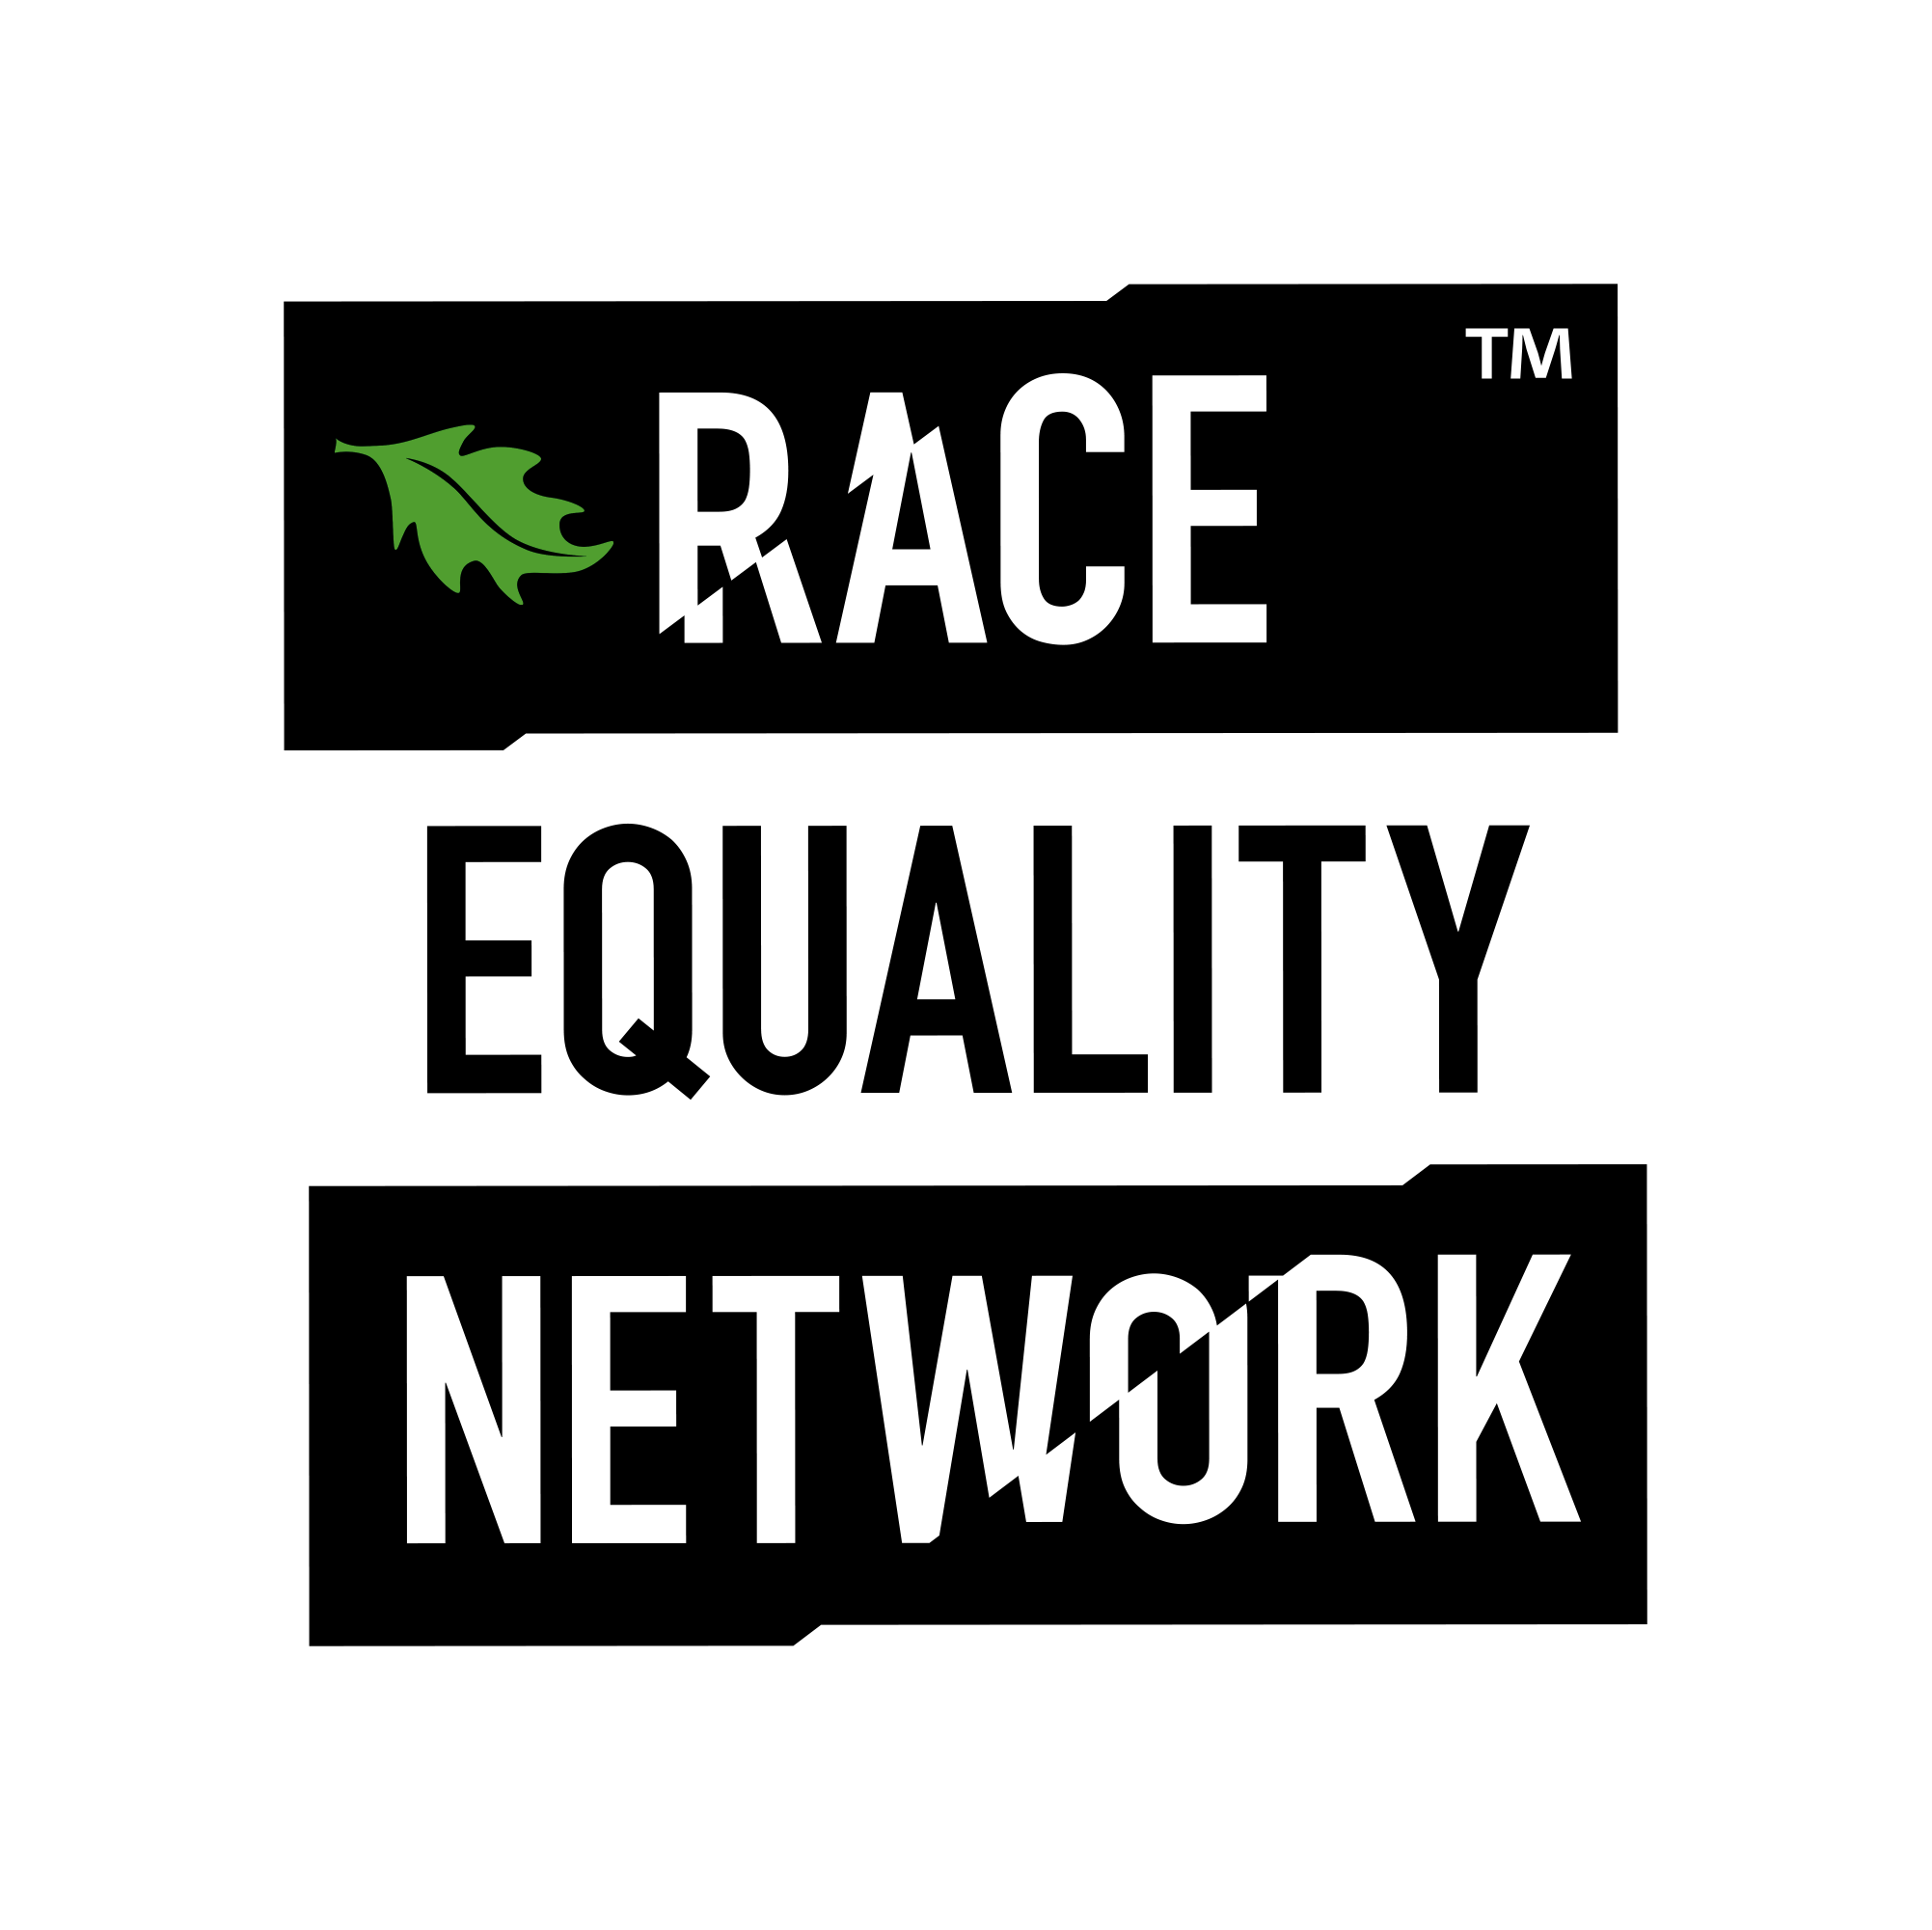 Race Equality Network